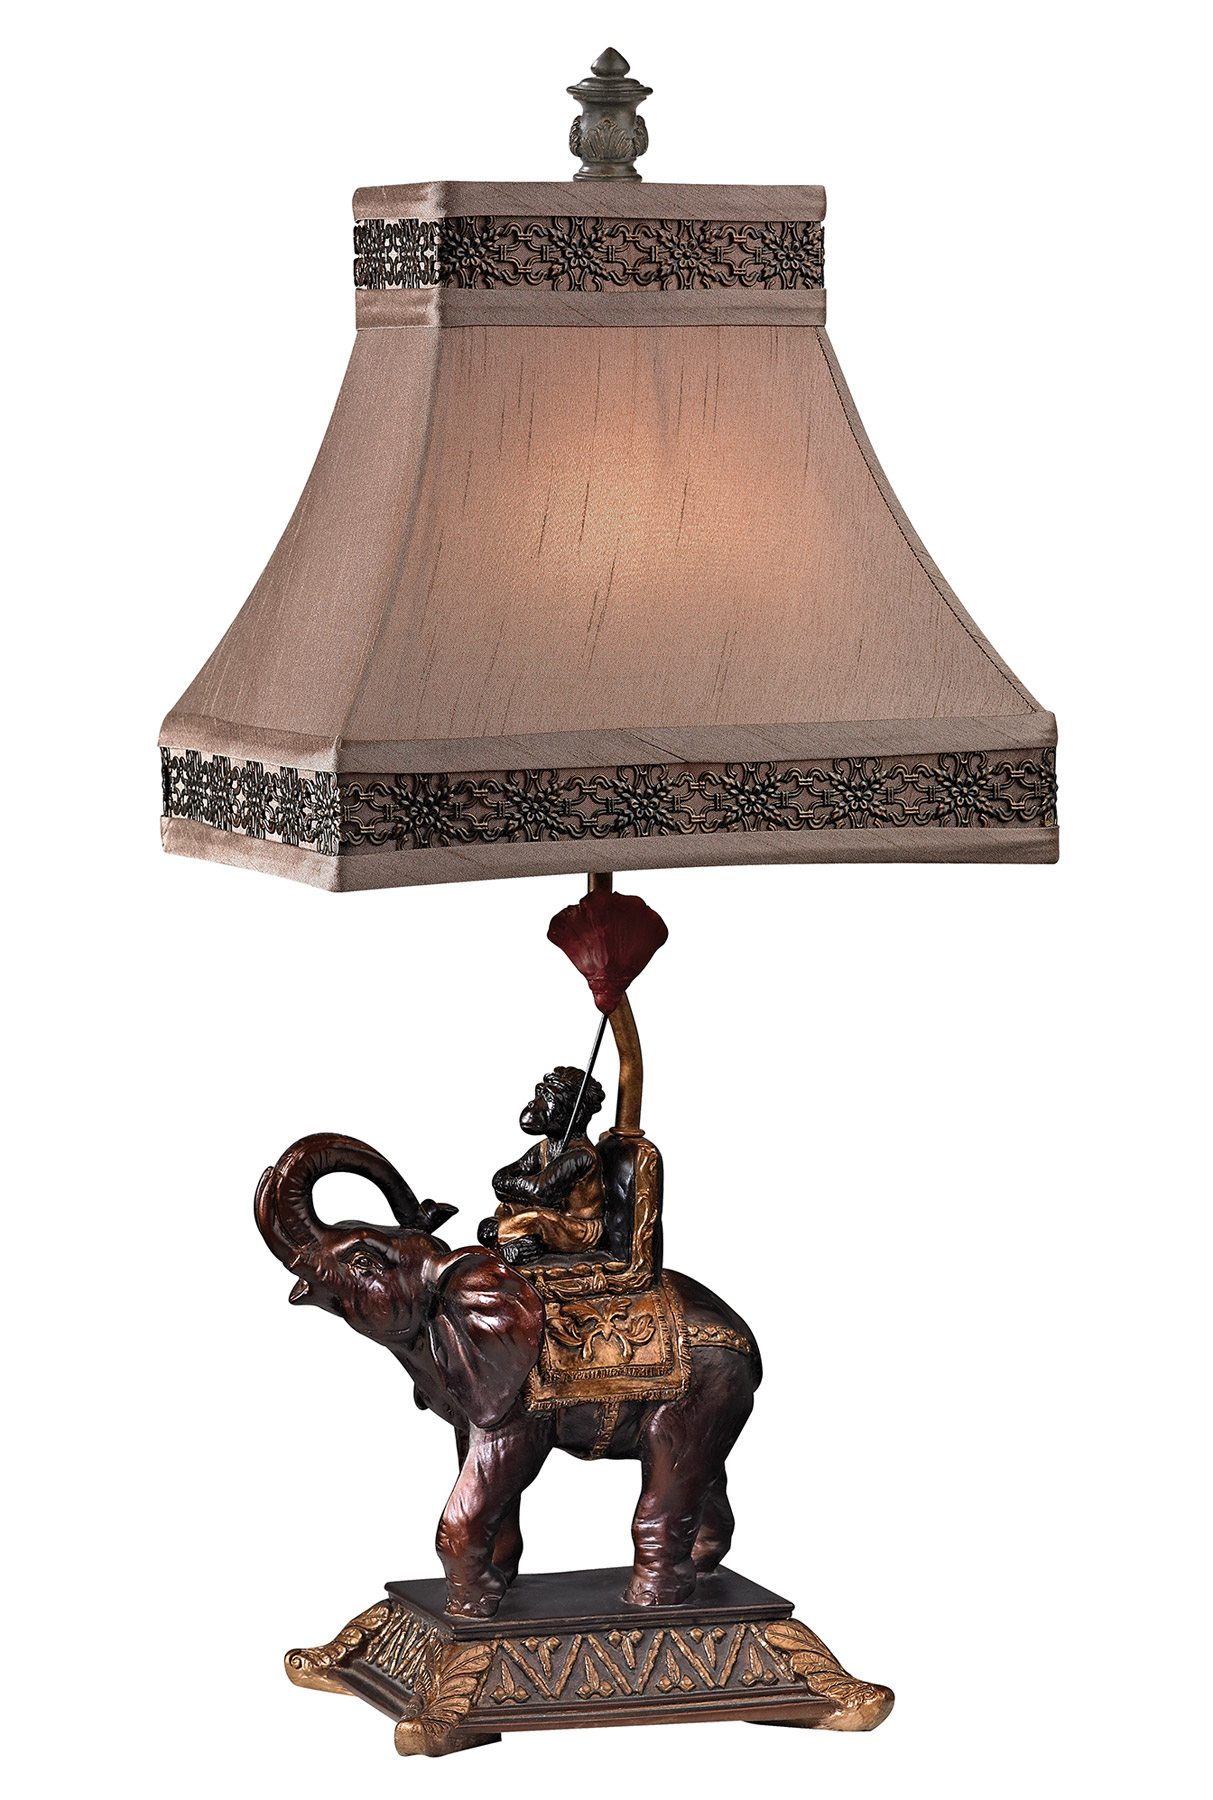 Dimond D2476 Alanbrook Monkey Riding An Elephant Table Lamp